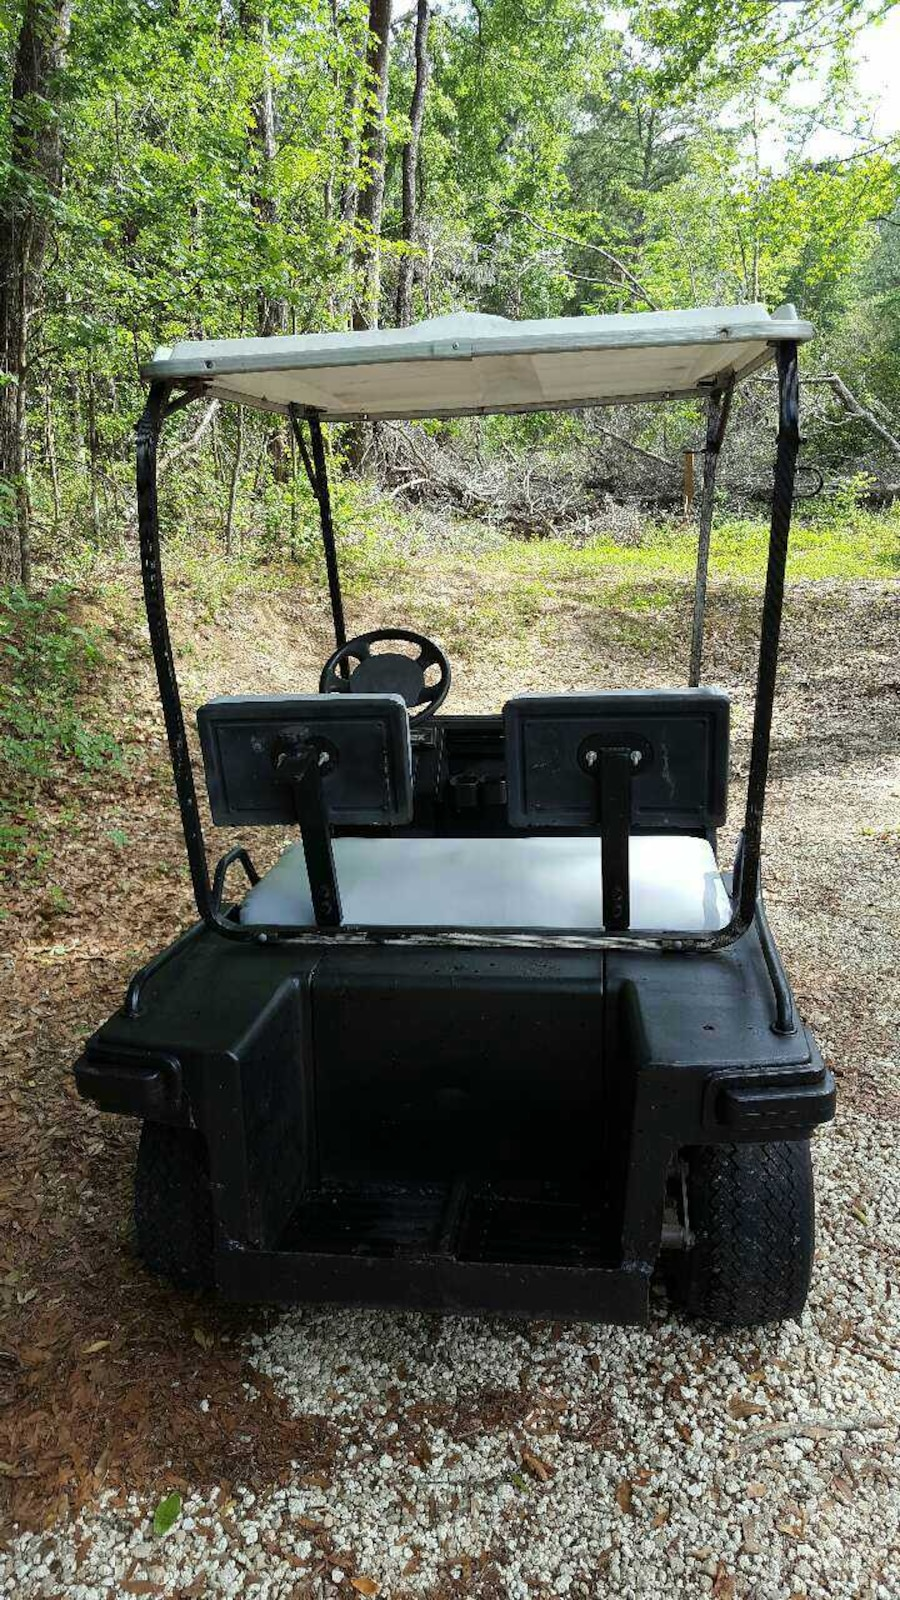 used 1990 melex 412 electric golf cart in alachua. Black Bedroom Furniture Sets. Home Design Ideas